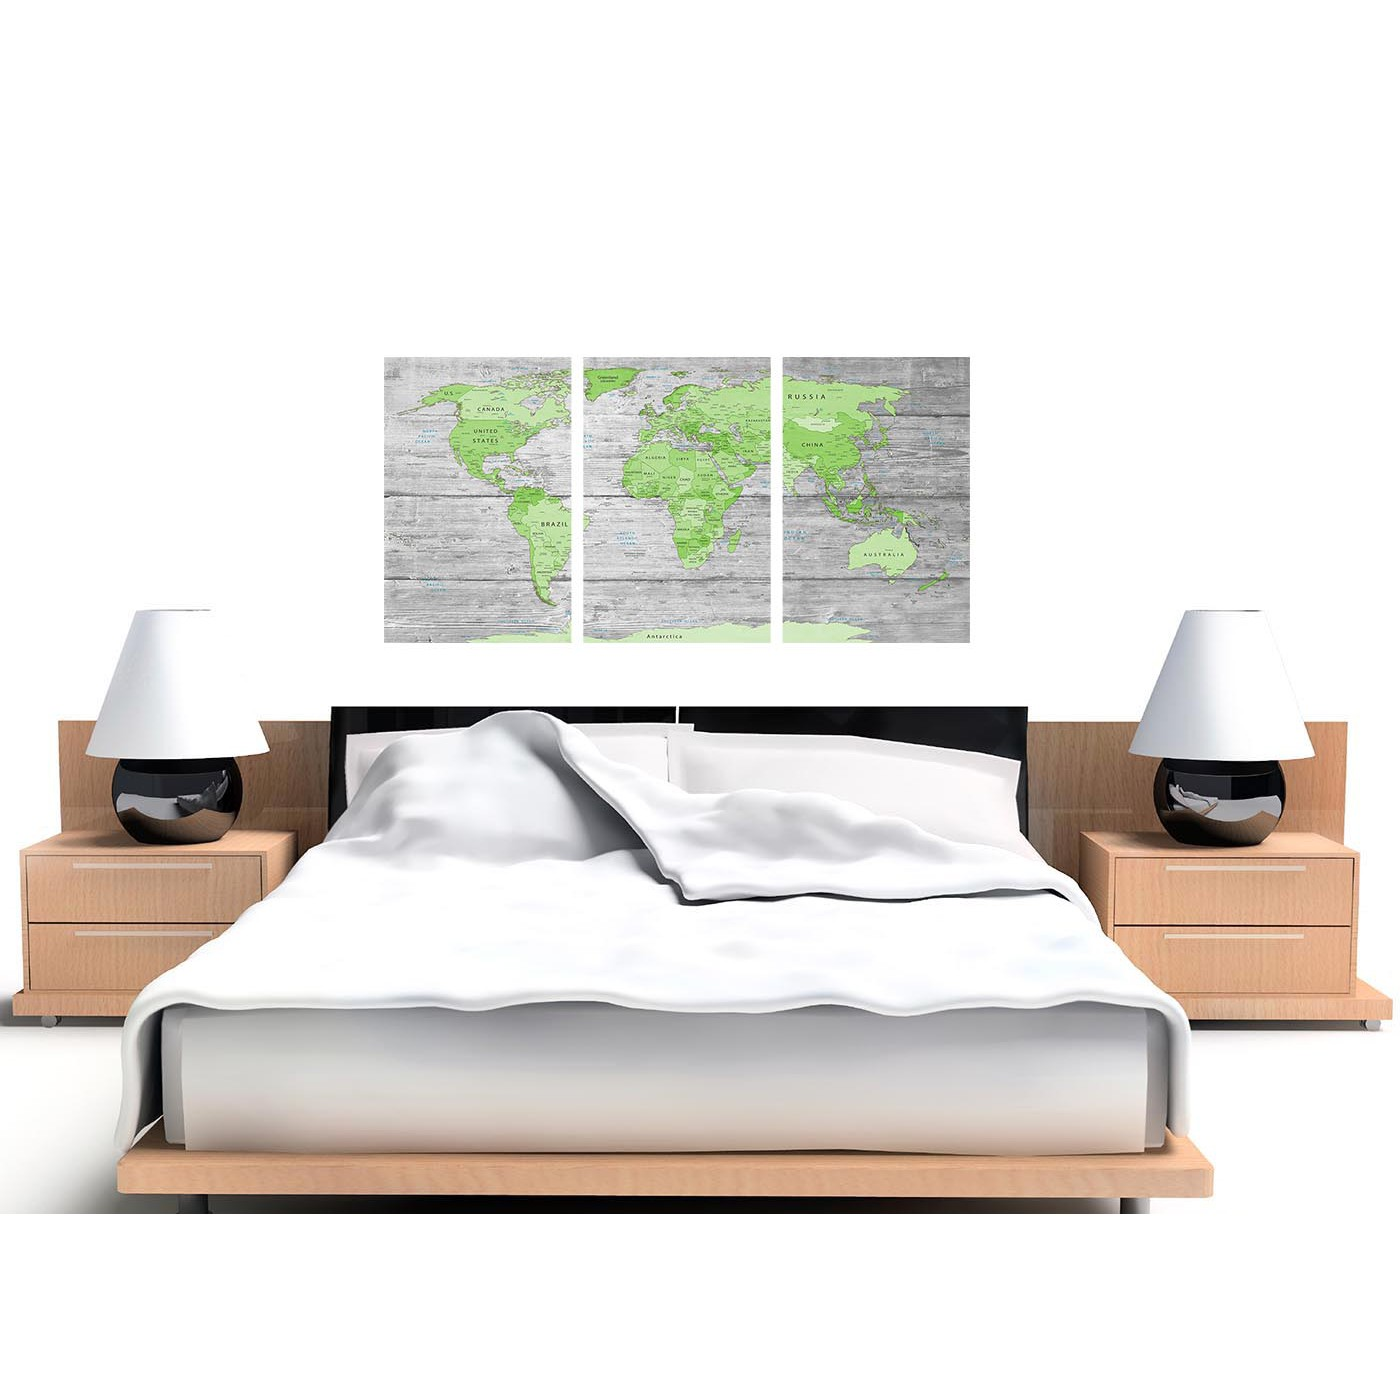 Large lime green grey world map atlas canvas wall art print display gallery item 1 cheap green grey large lime green grey world map atlas canvas wall art print maps canvas display gallery item 2 gumiabroncs Image collections